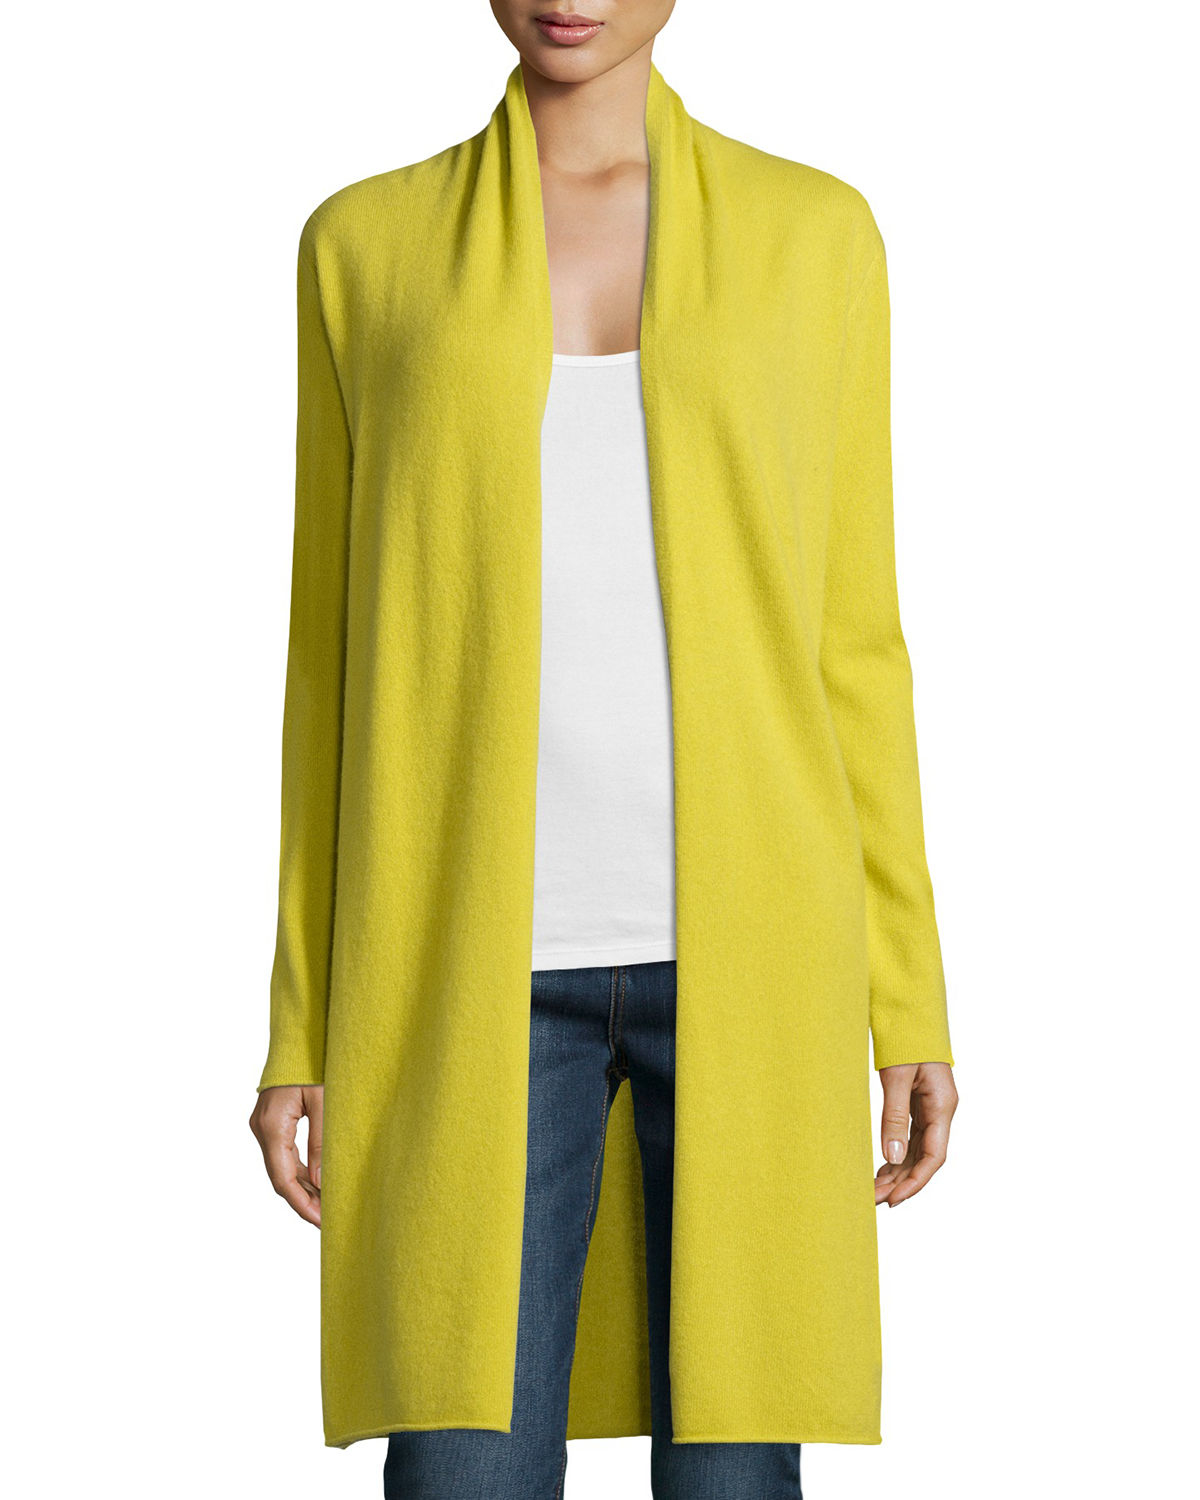 Neiman marcus Long Cashmere Duster Cardigan in Yellow | Lyst